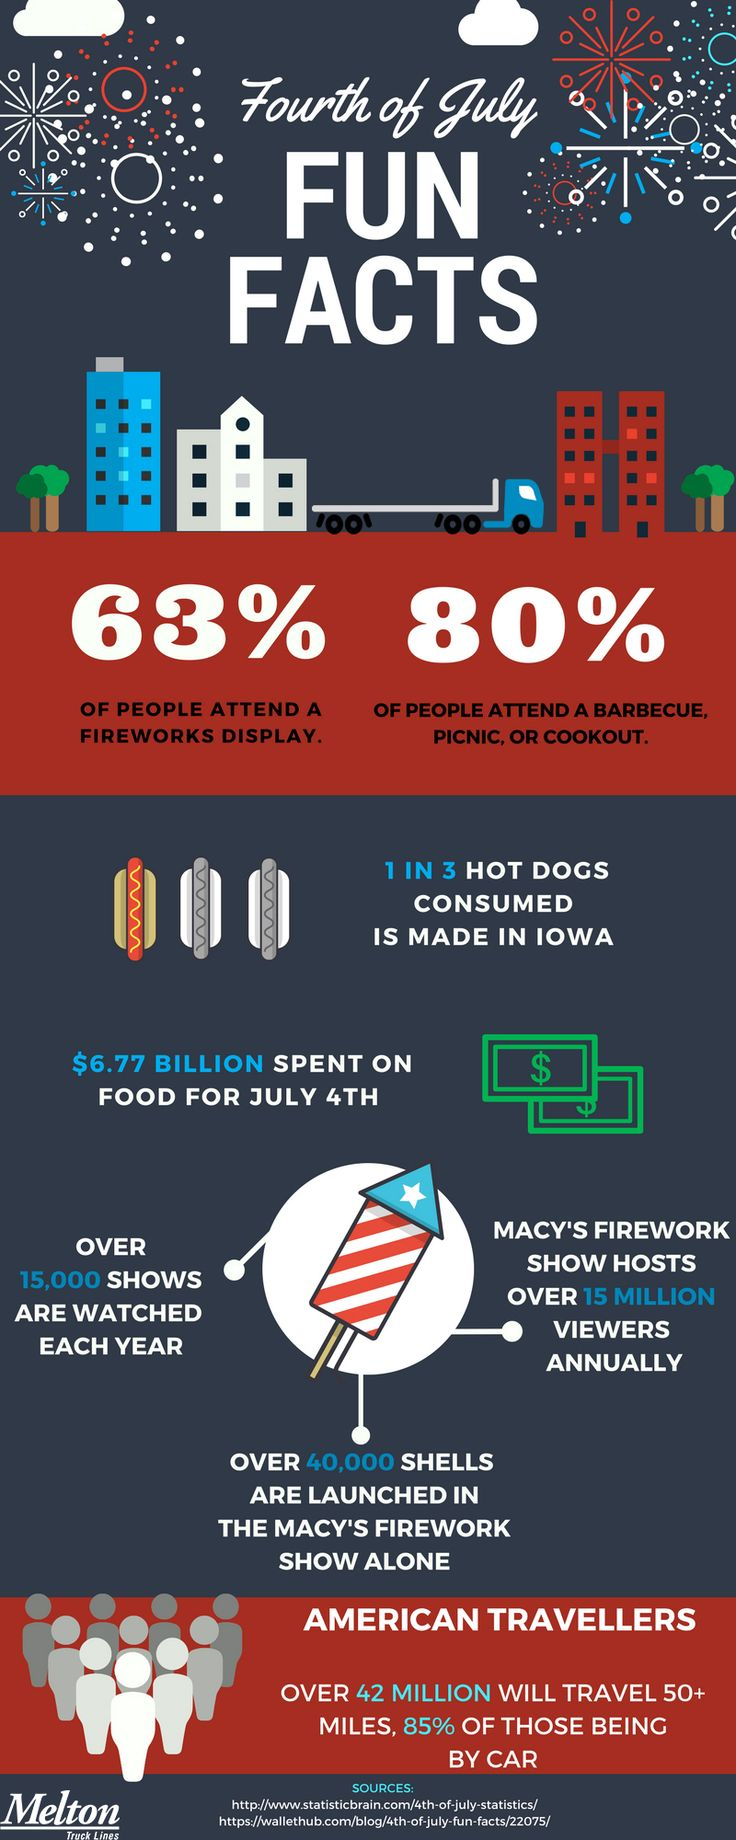 Enjoy learning some Fourth of July Fun Facts! Above all, stay safe this holiday and consider the safety of others as well.   Interested in a great driving job? Call 866-938-1321